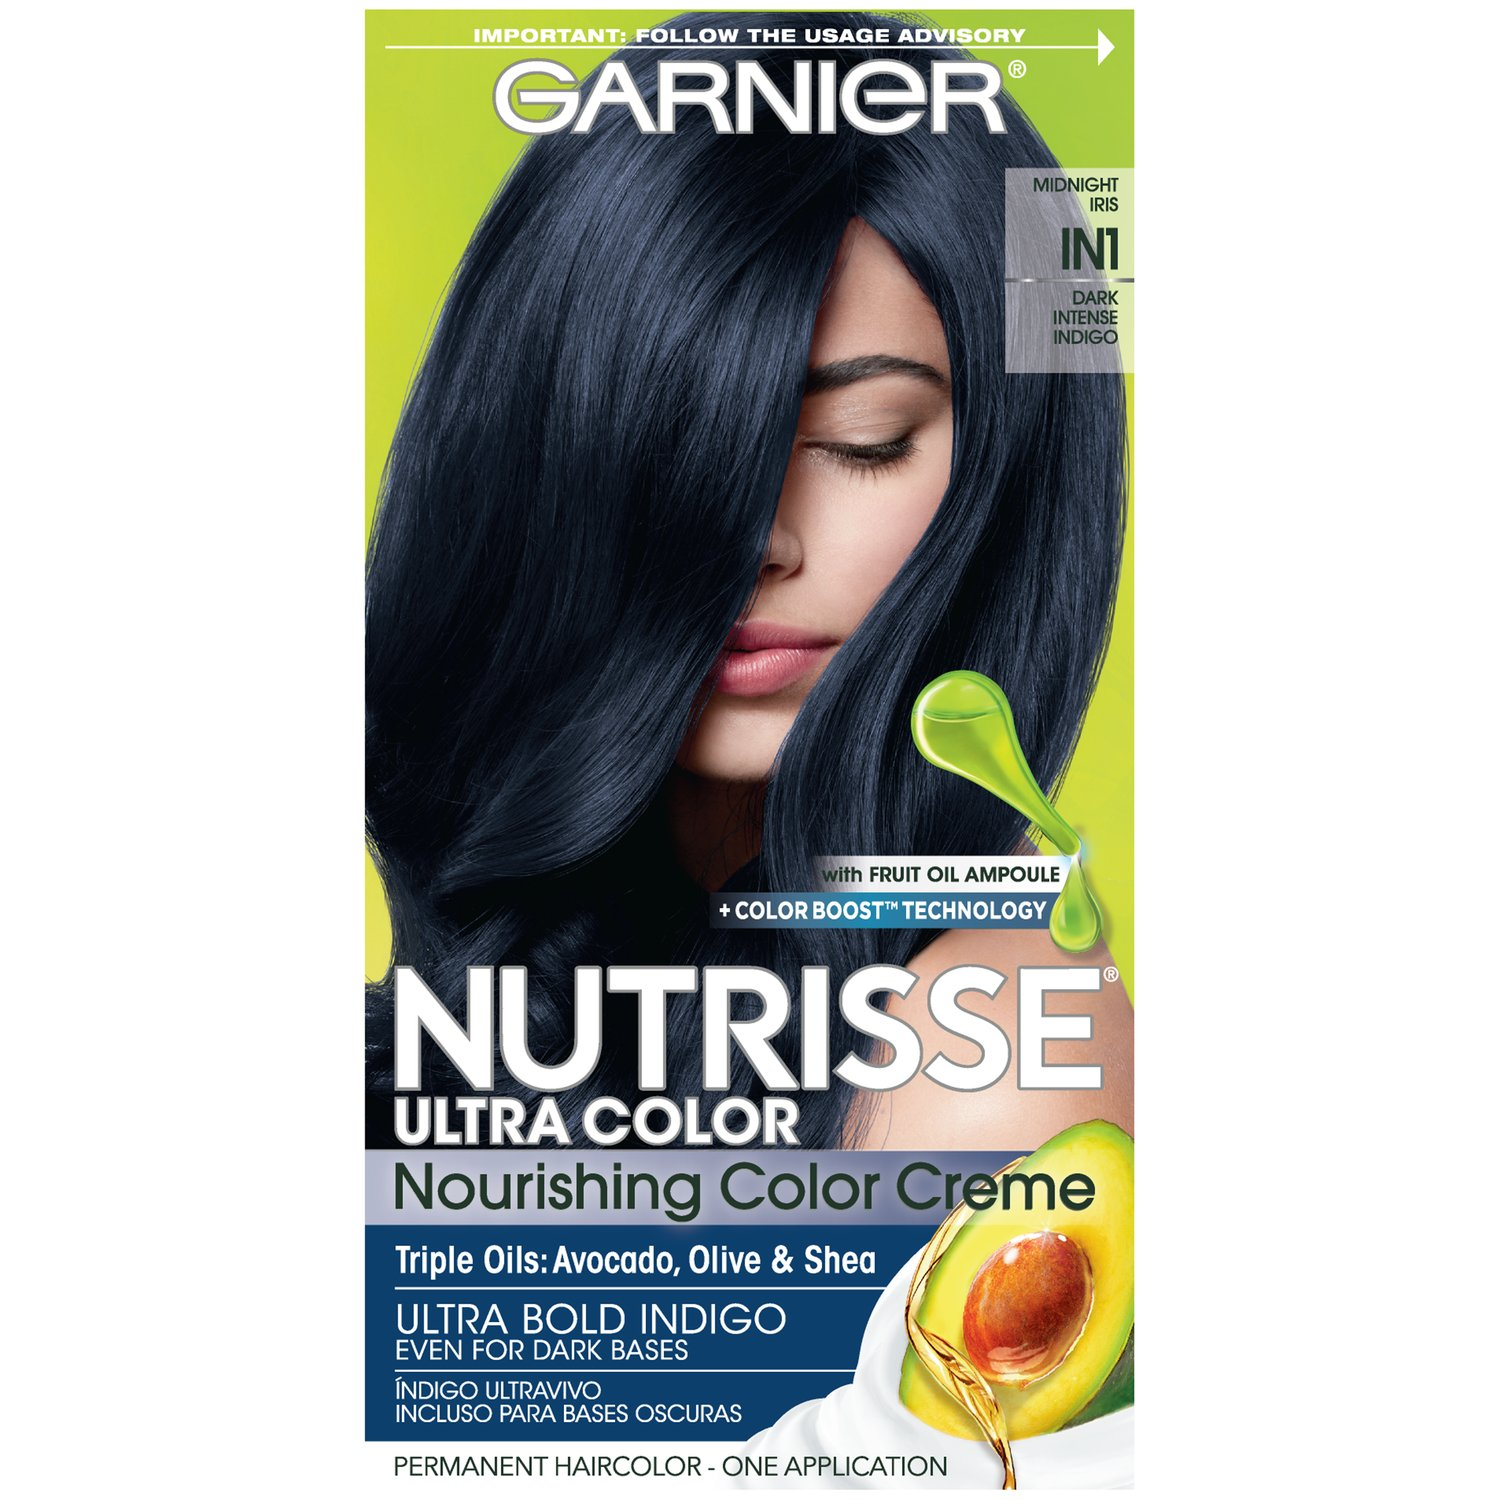 Garnier Nutrisse Ultra Color Nourishing Hair Color Creme, IN1 Dark Intense Indigo (Packaging May Vary), 1 Count